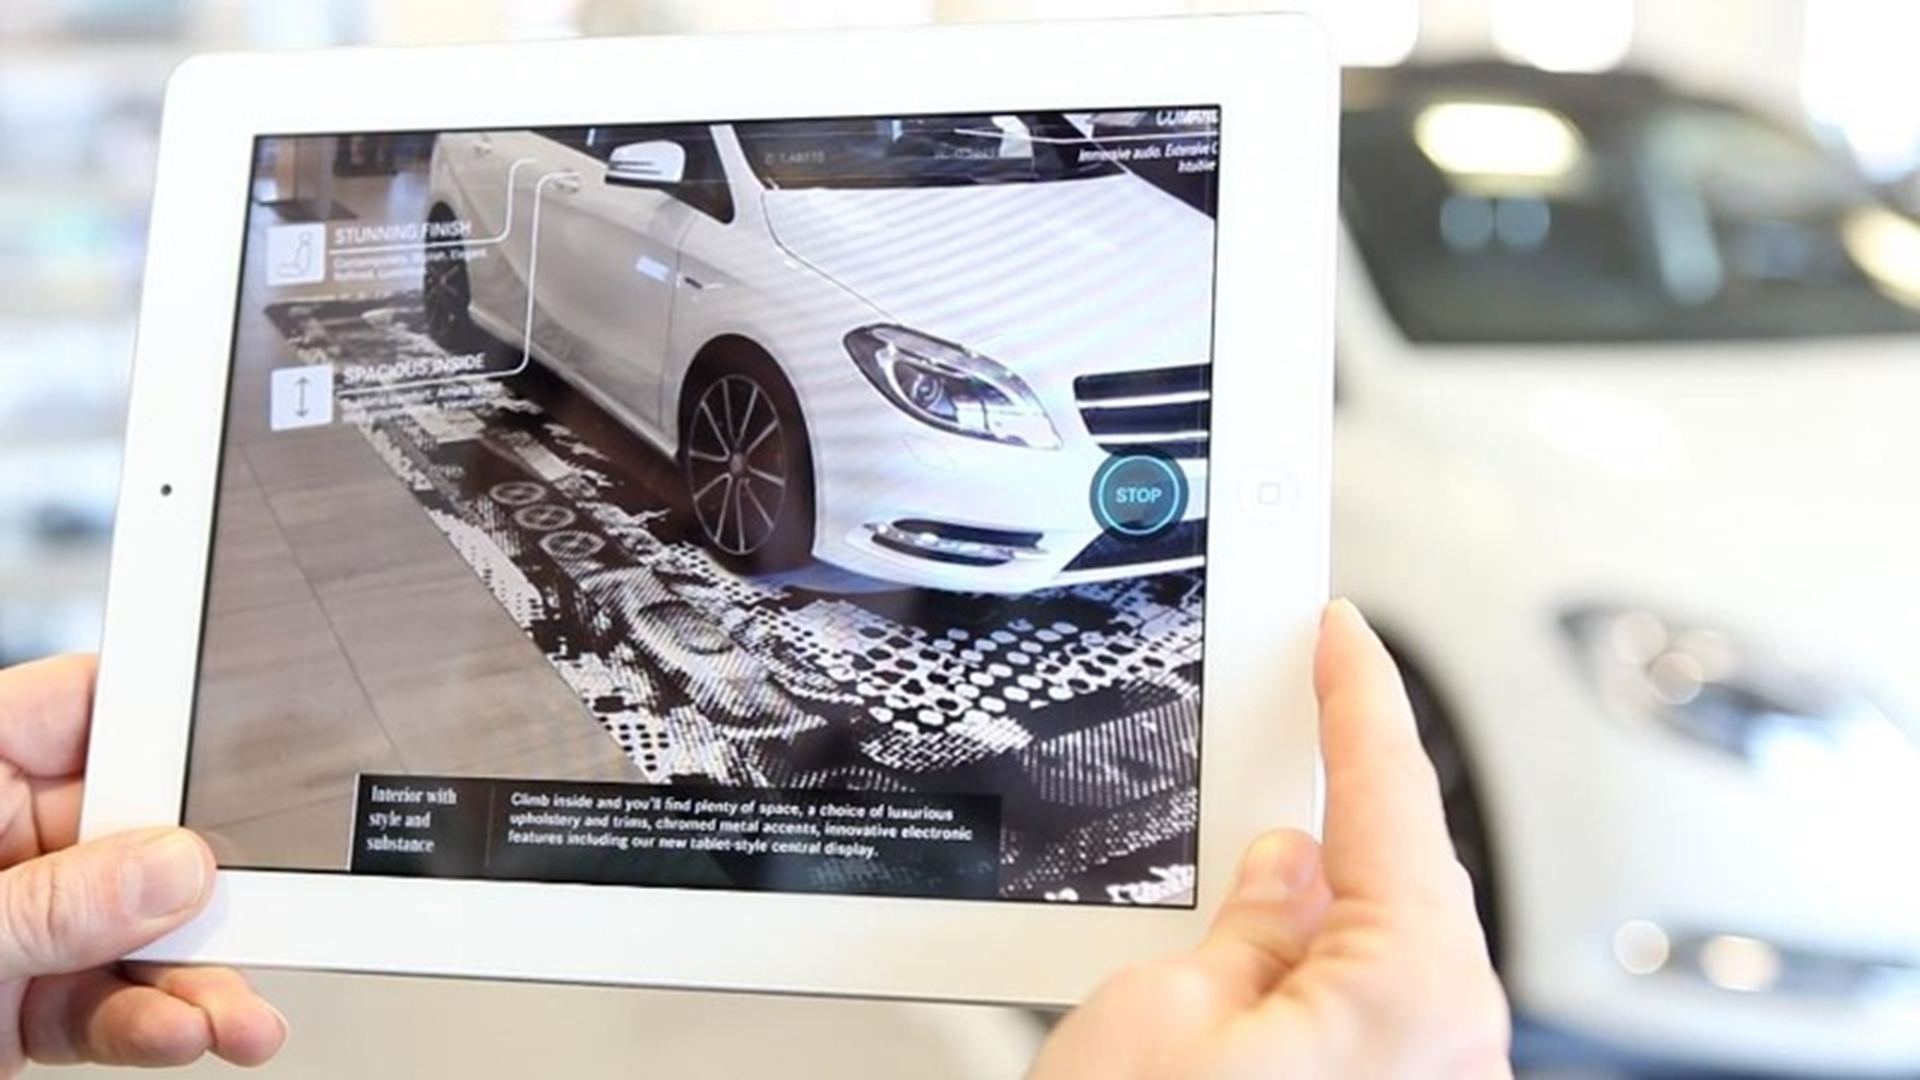 Mercedes-Benz Ipad app